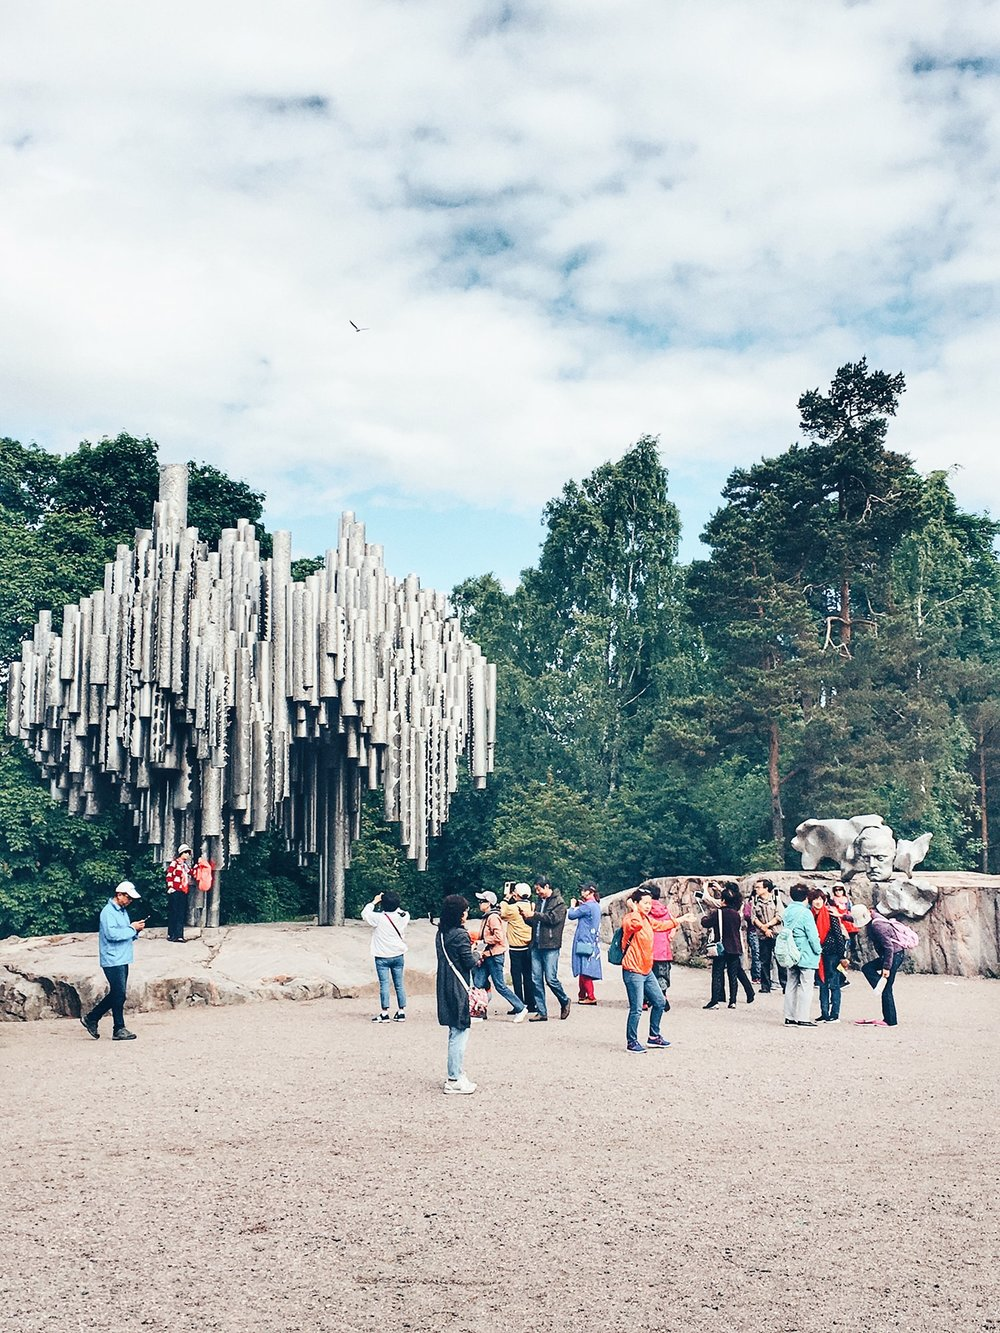 The Sibelius Monument (Helsinki, Finland)